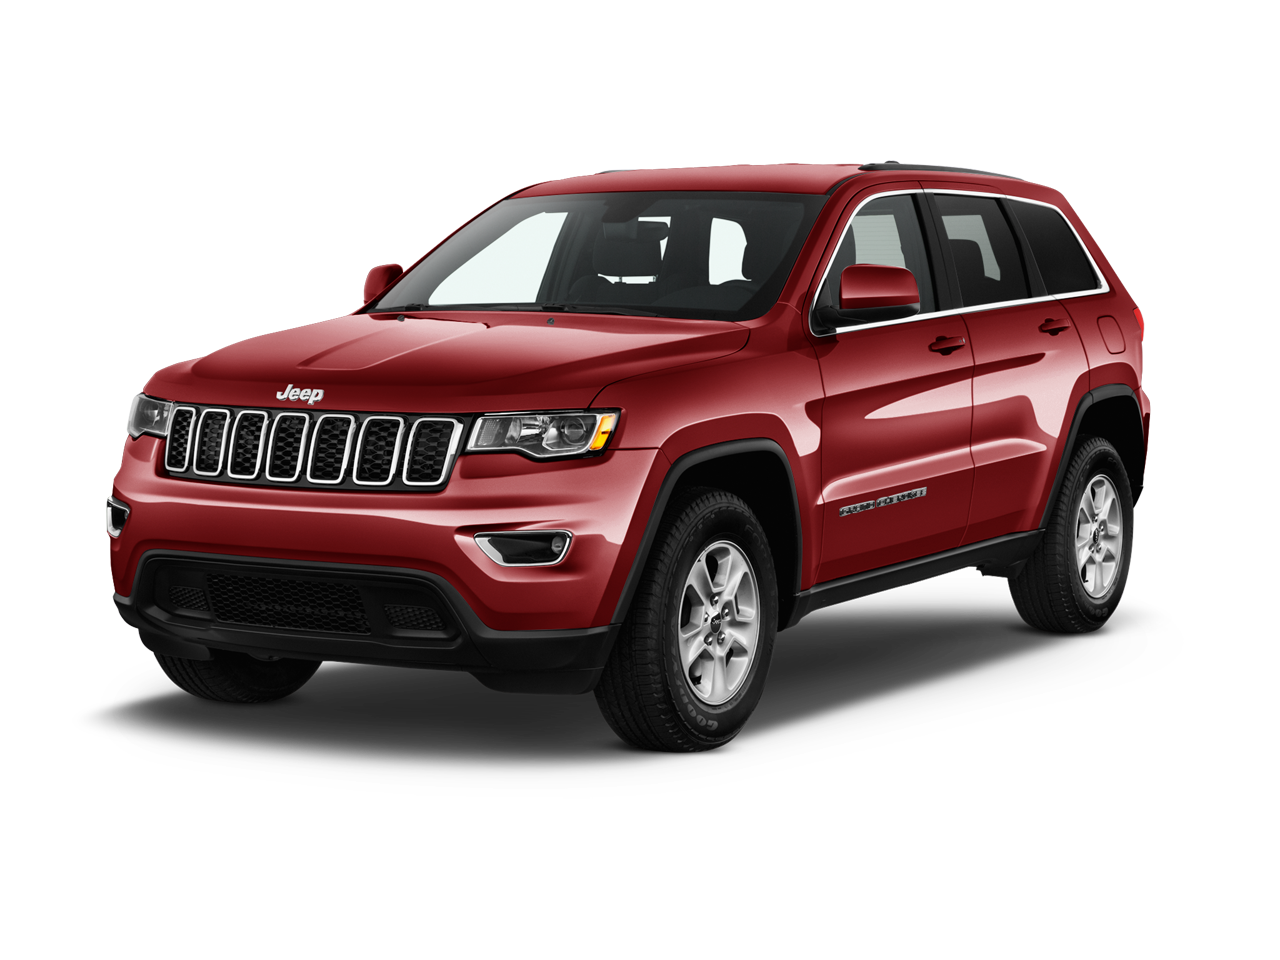 new grand cherokee laredo 2wd for sale champion chrysler dodge jeep ram. Black Bedroom Furniture Sets. Home Design Ideas